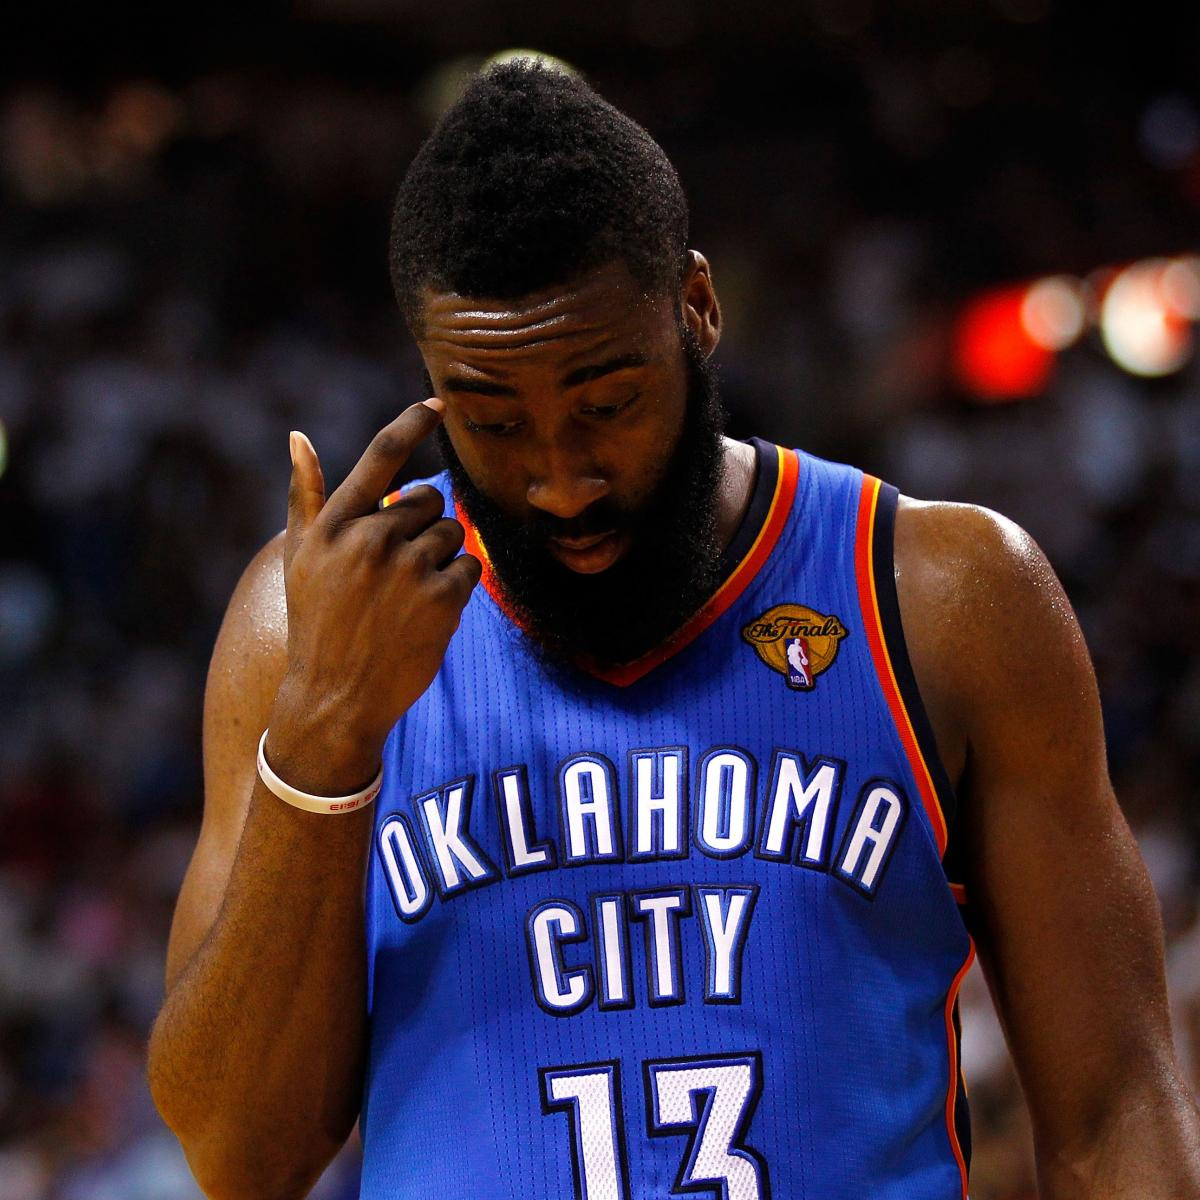 James Harden Free Agency: James Harden Reportedly Rejects 4-Year Deal With Thunder